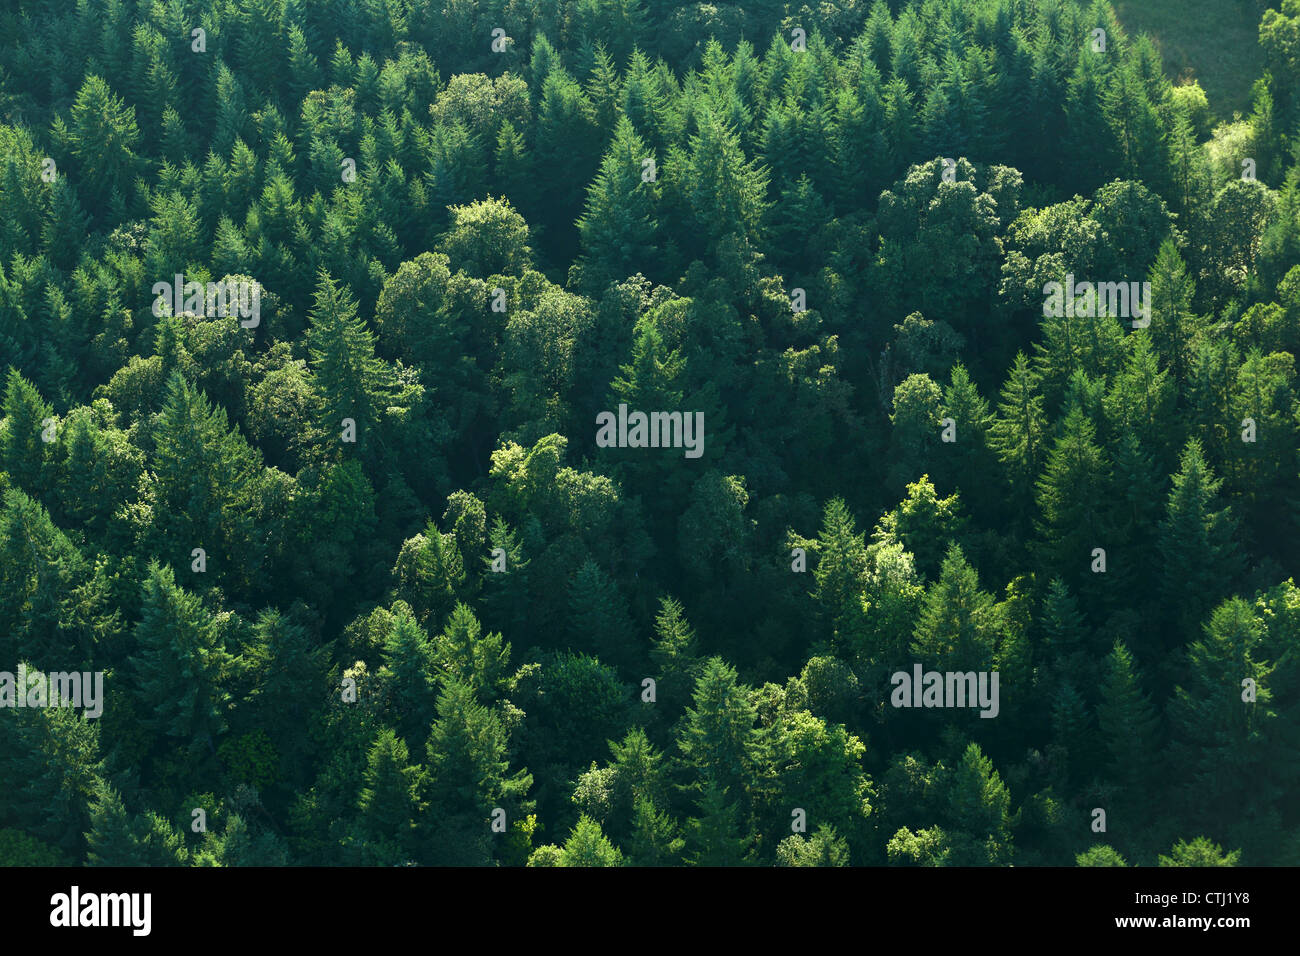 Aerial view of trees in forest - Stock Image